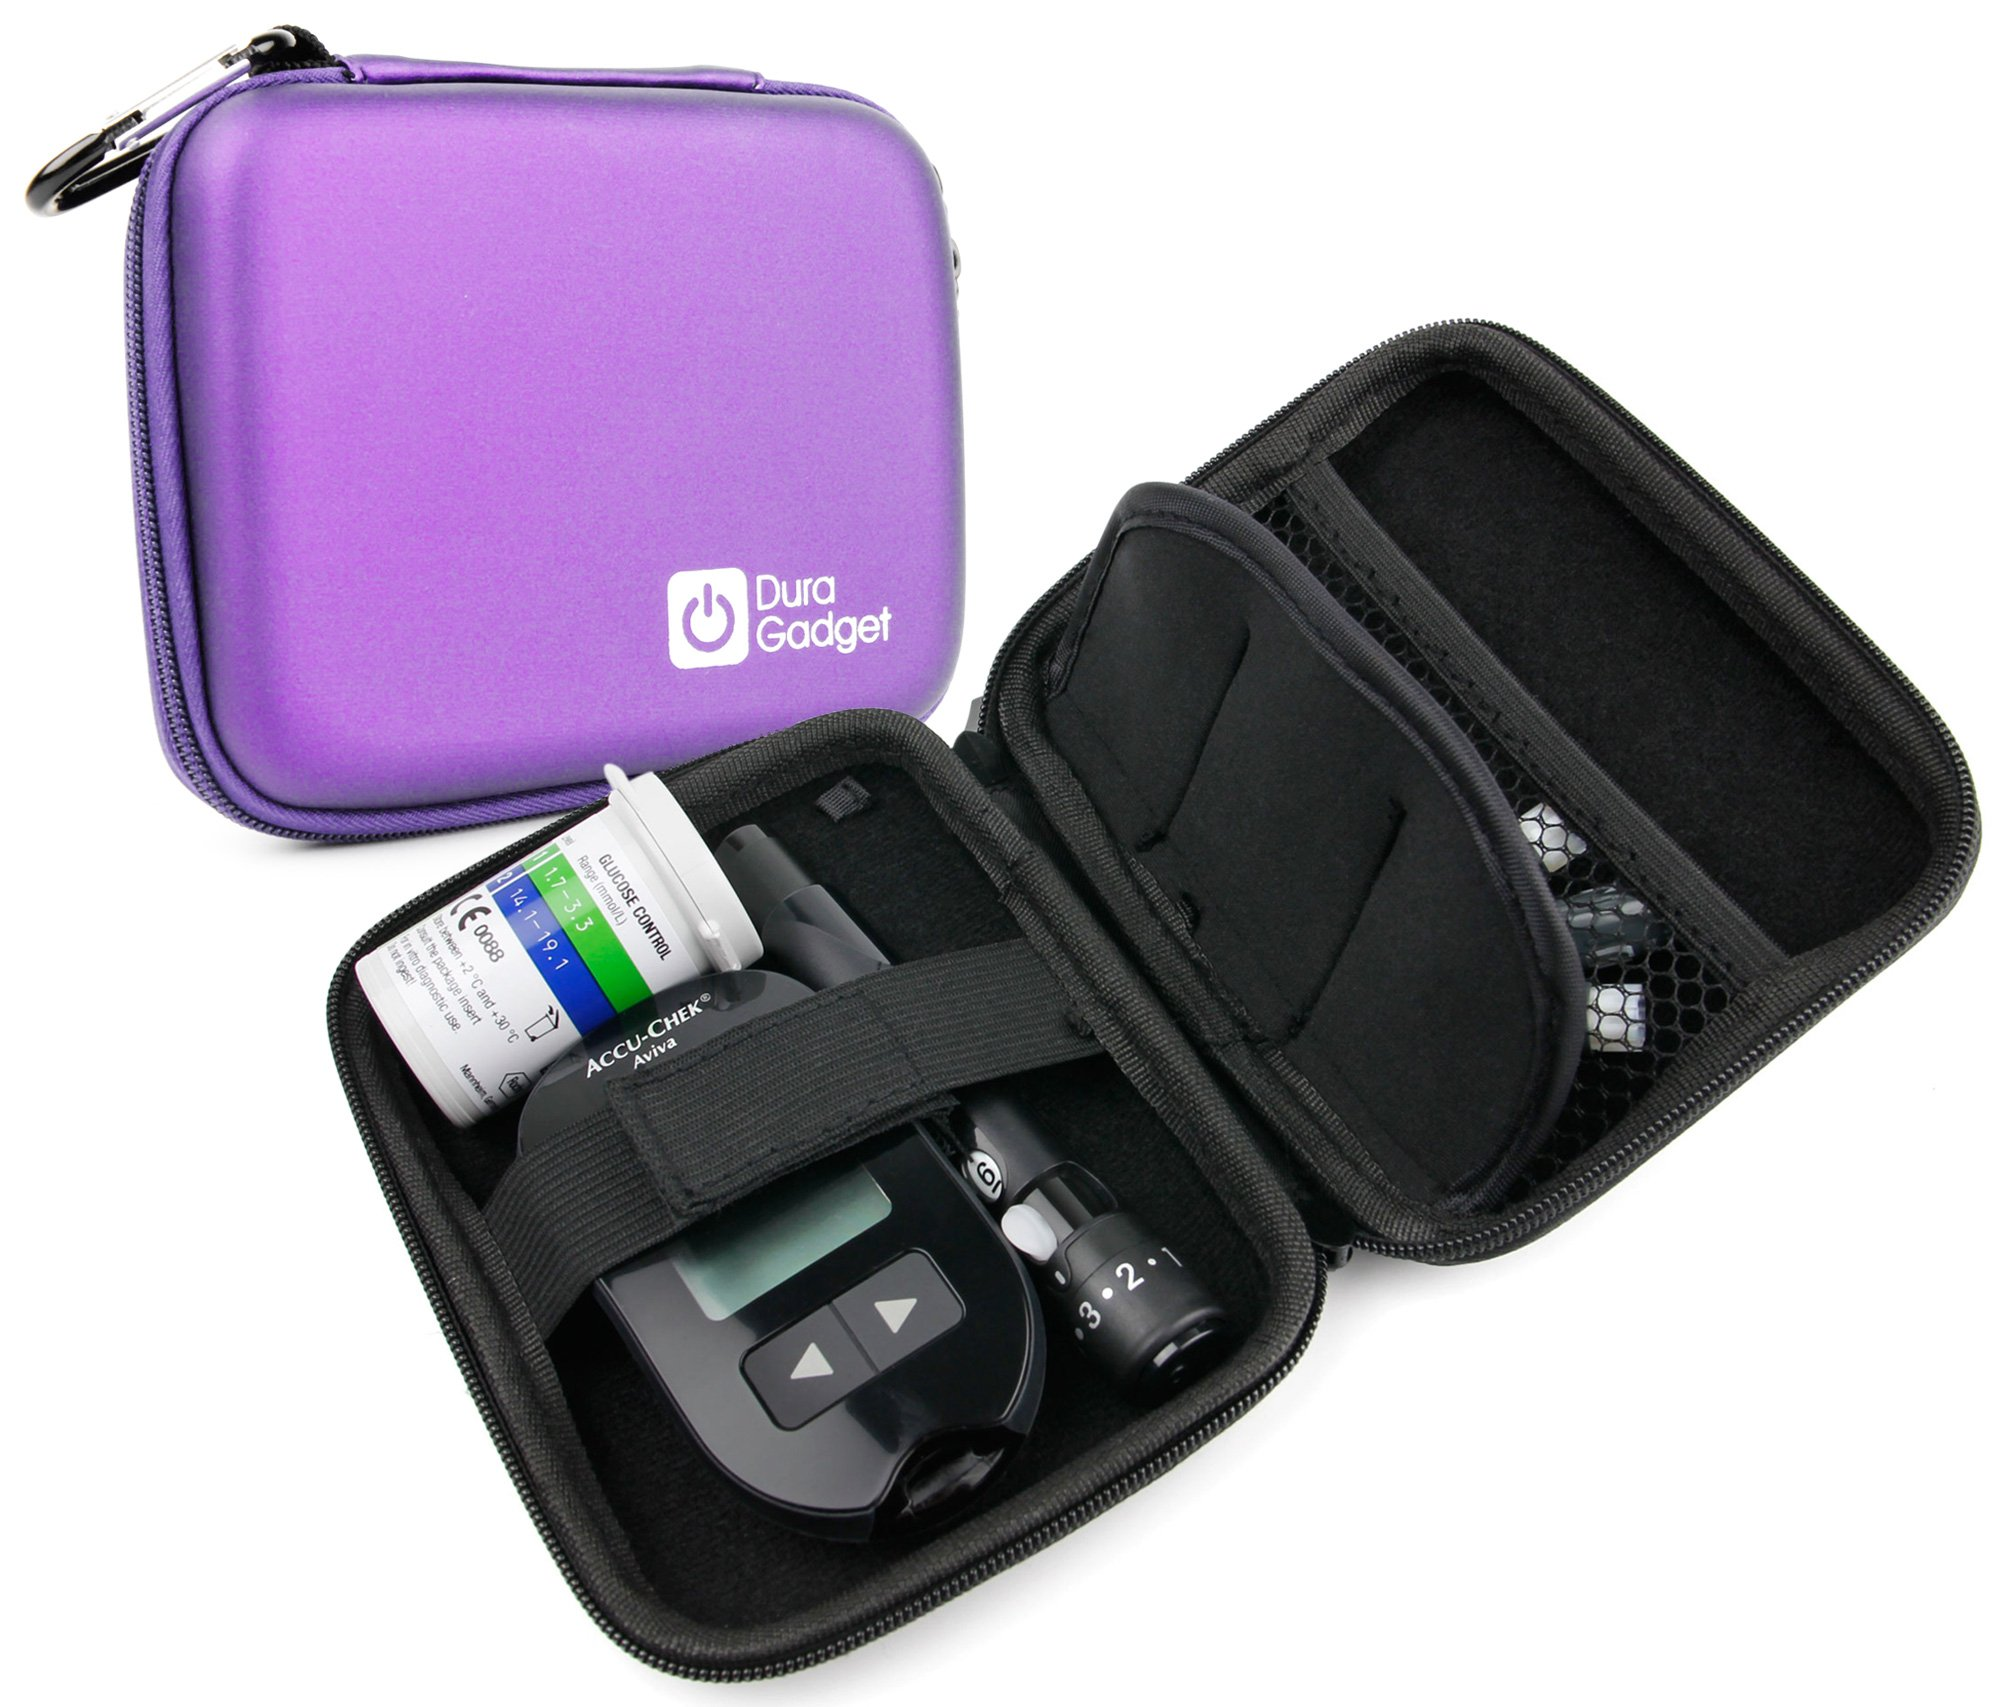 DURAGADGET Purple Rigid Insulin Diabetes Medical Supplies Shell Storage / Travel Case With Secure Dual Zips & Netted Internal Compartment